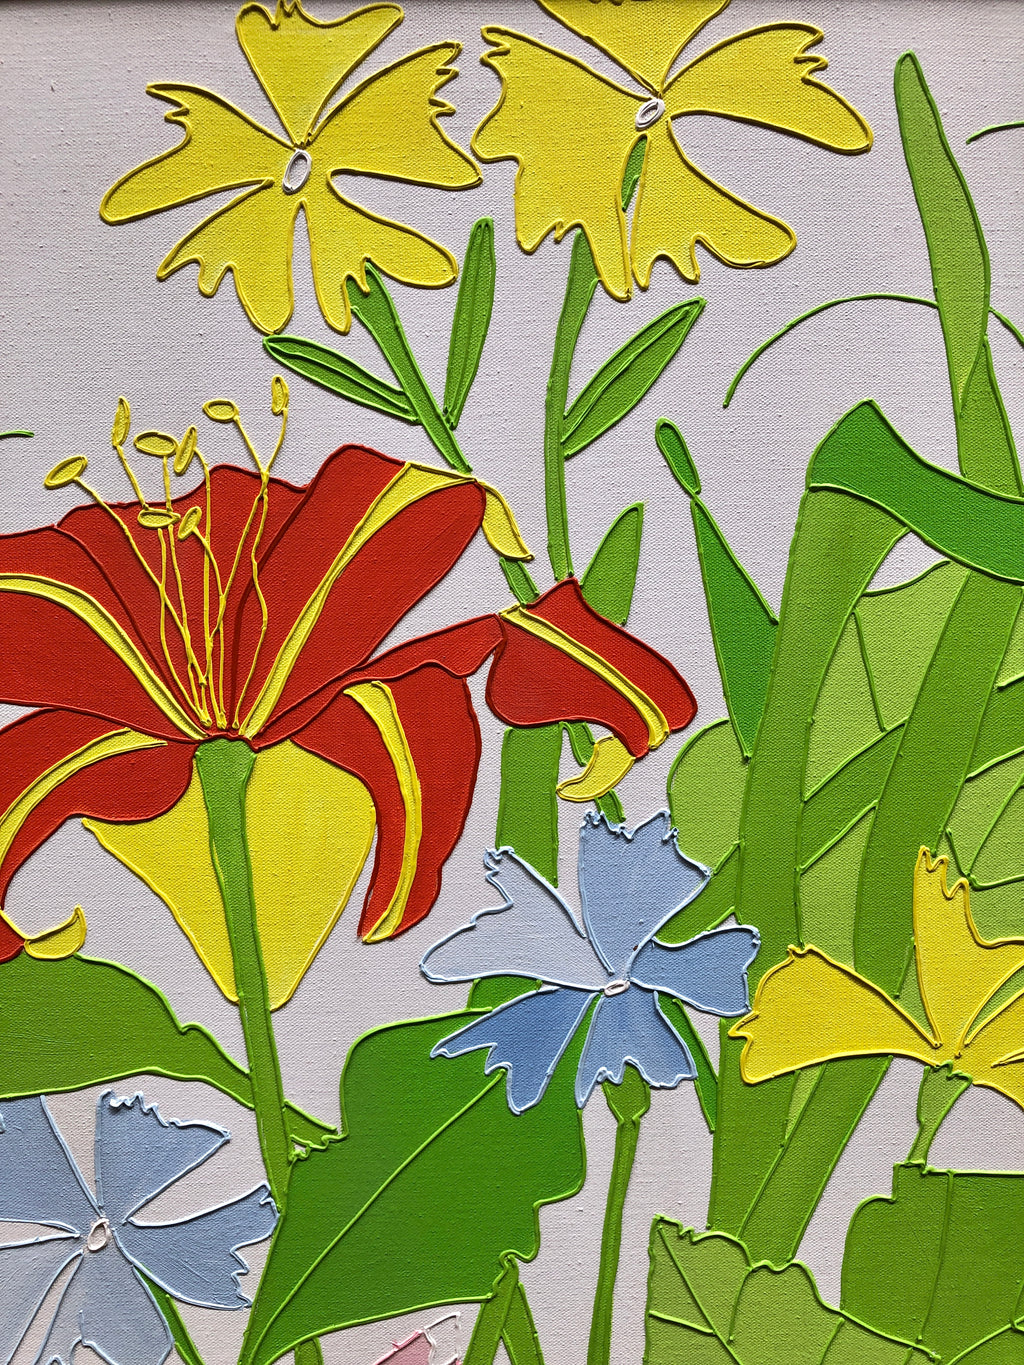 Vintage 1970s Floral Painting by Shari Hatchett Bohlmann